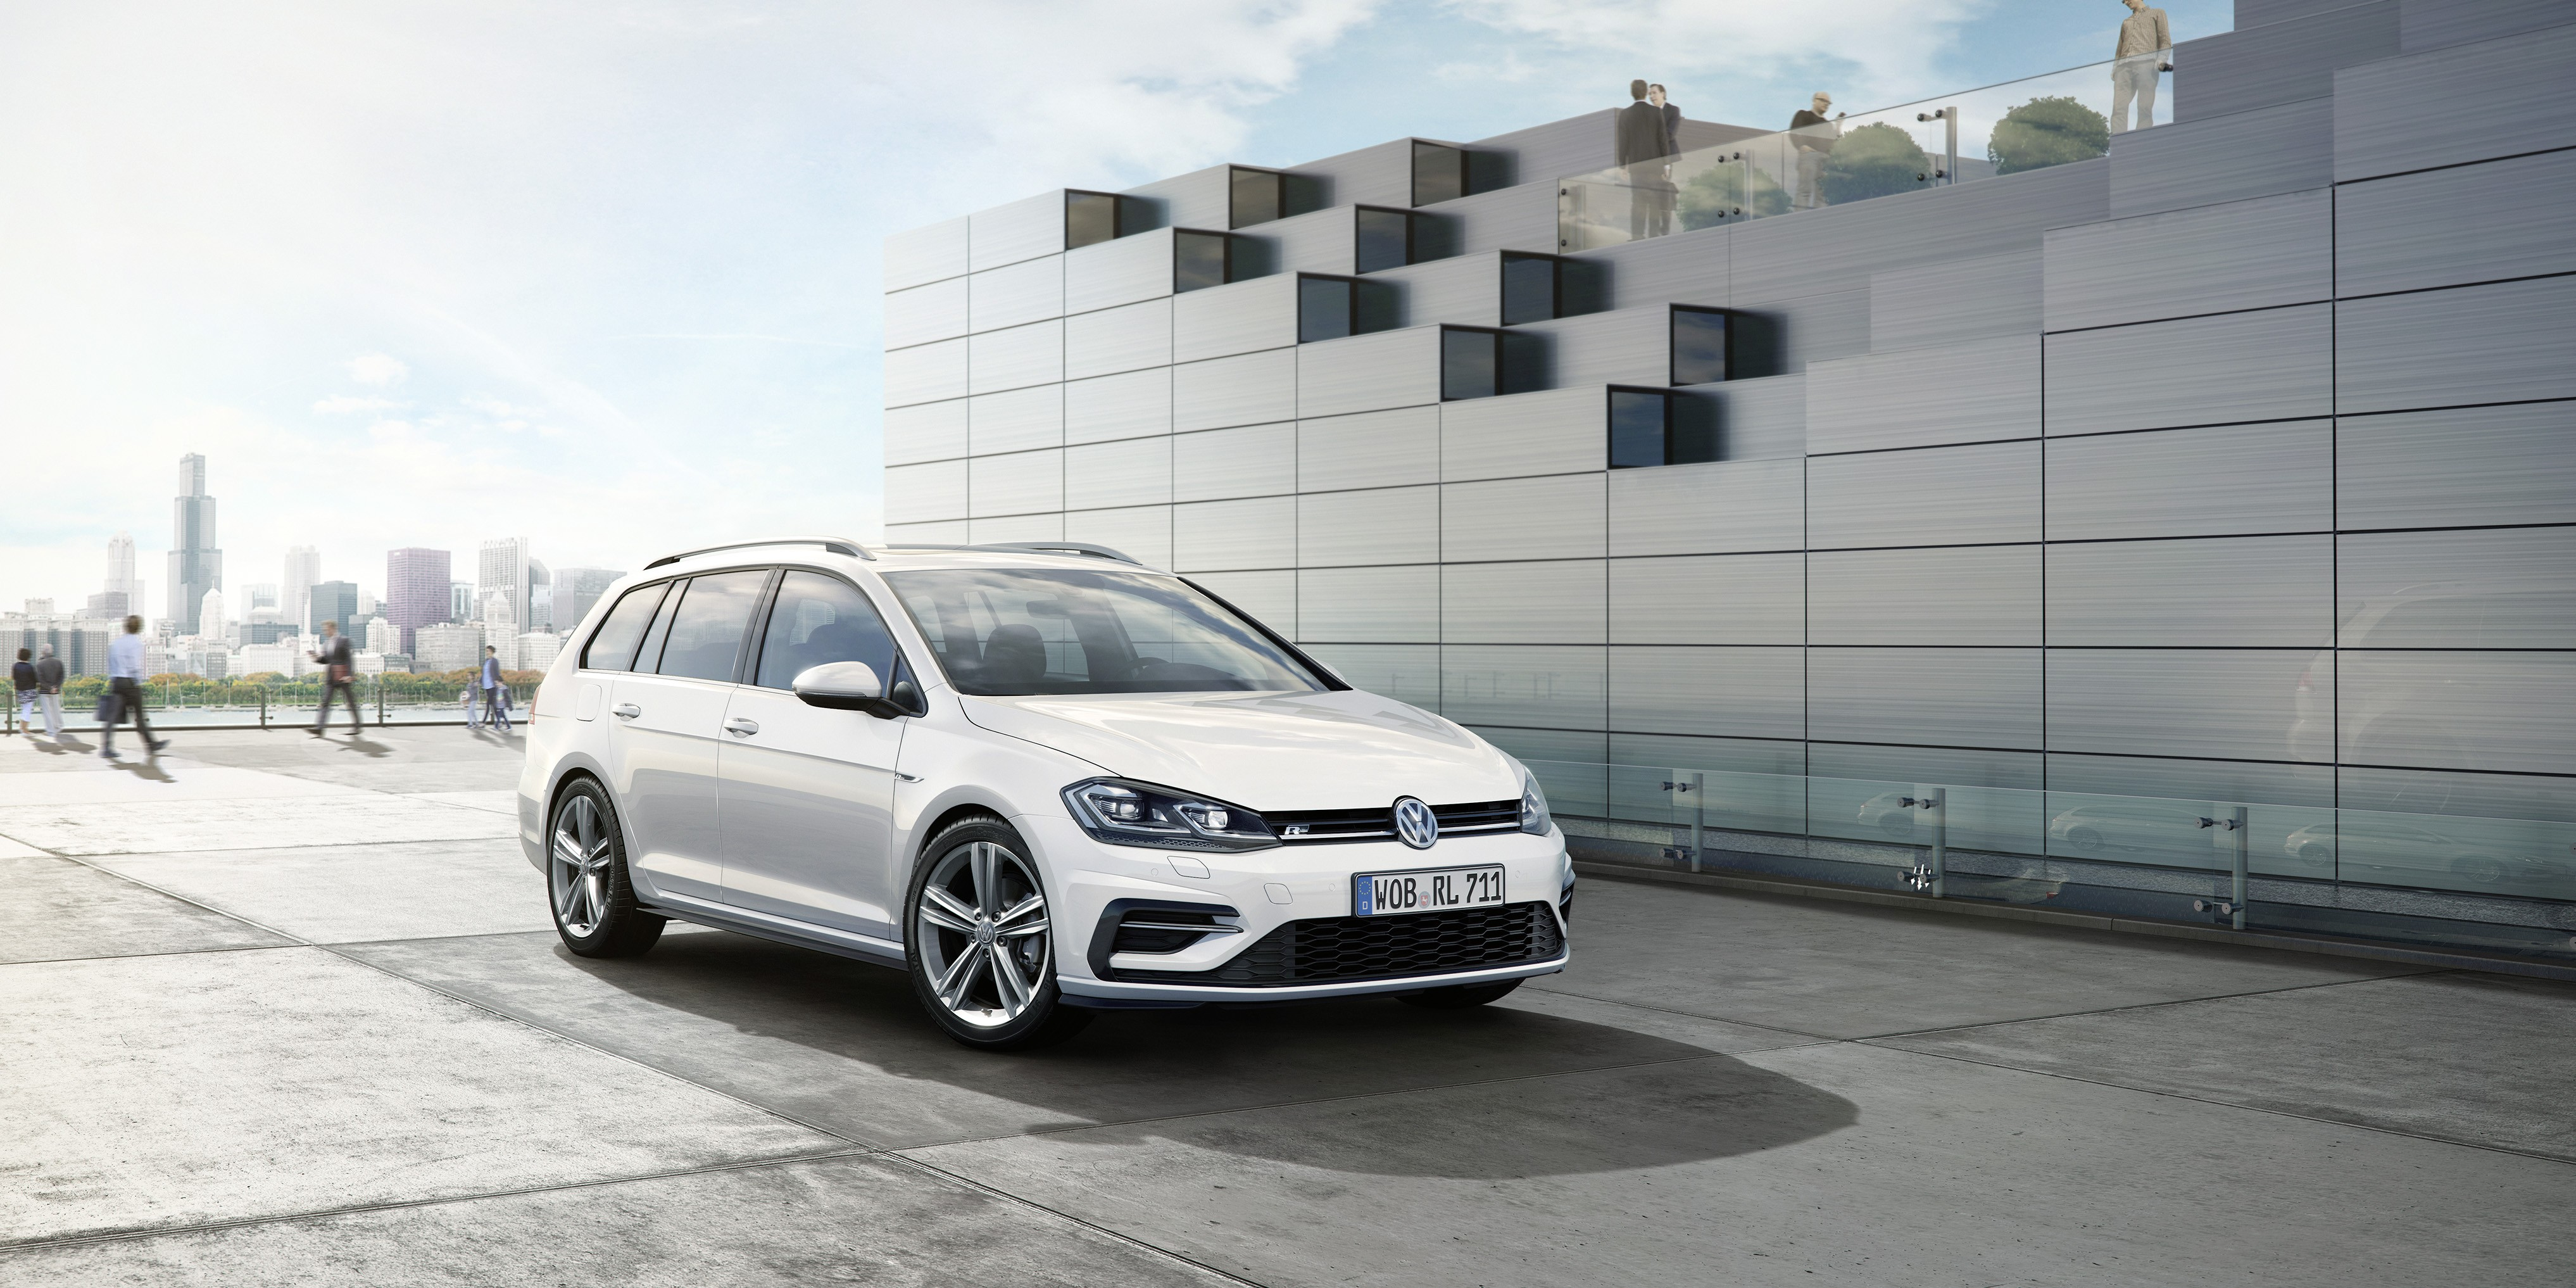 2017 Volkswagen Golf Facelift Gets R Line Kit For Hatch And Variant